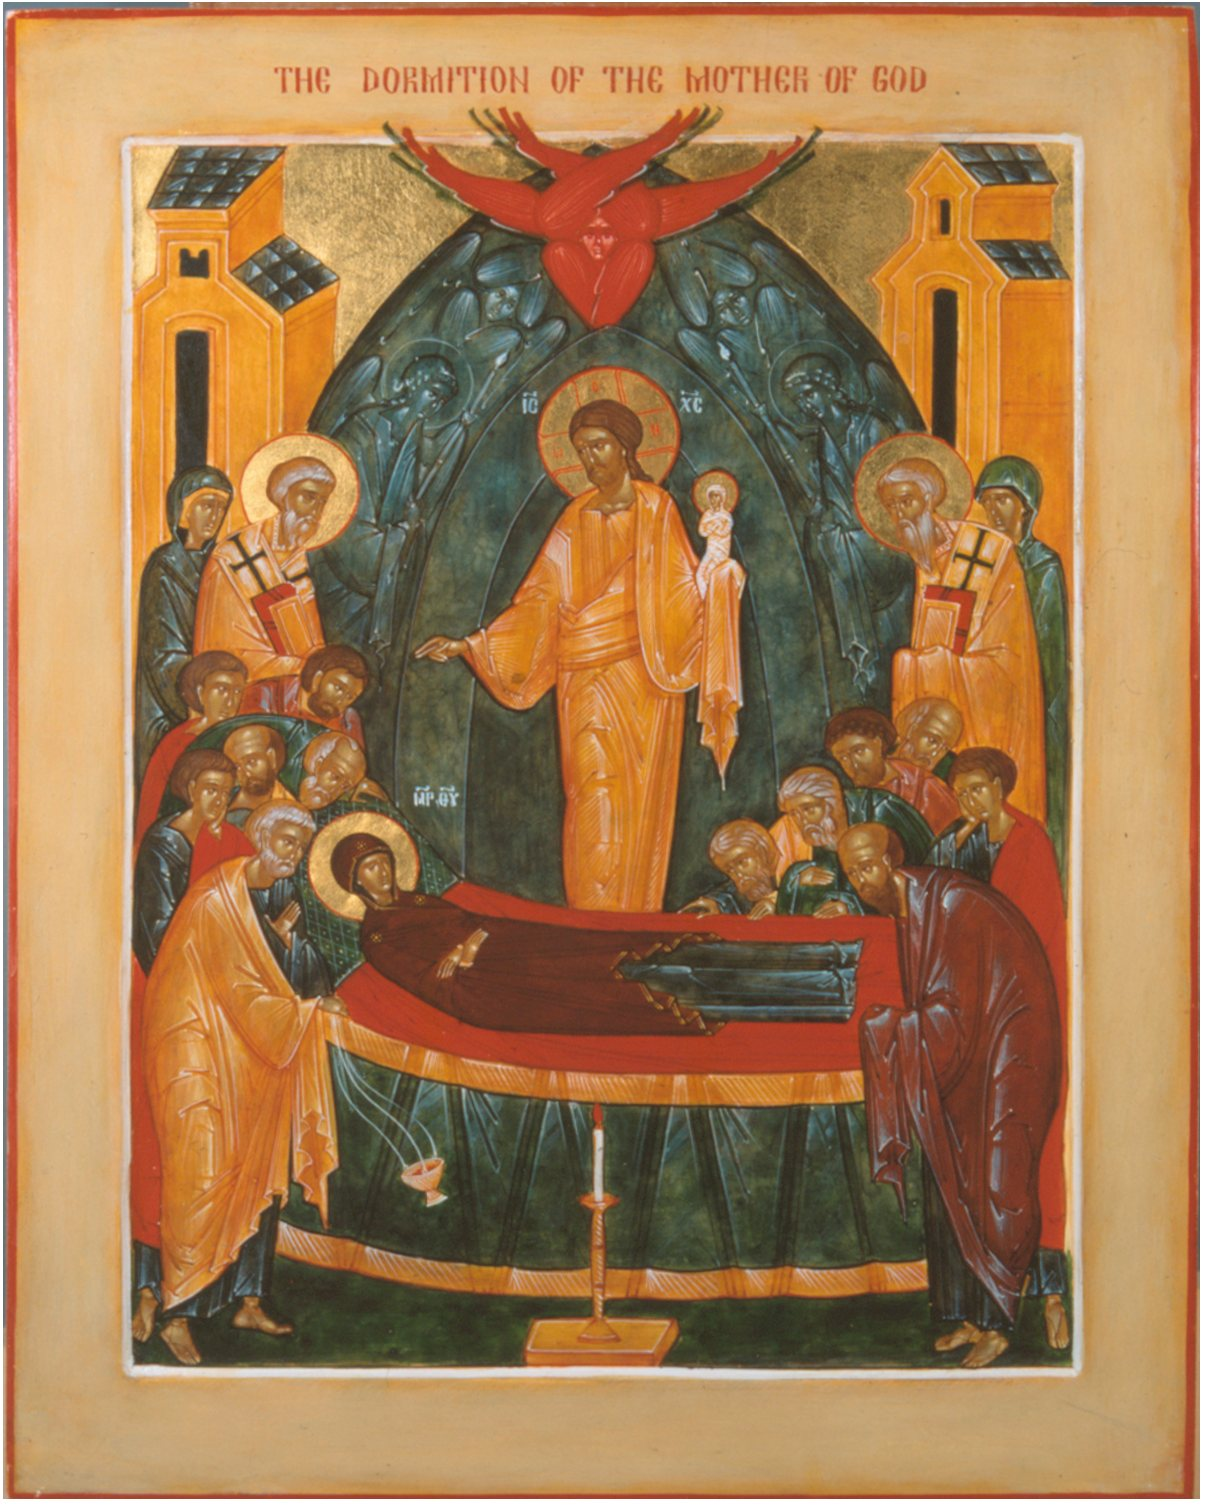 Dormition_of_the_Mother_of_God.jpg